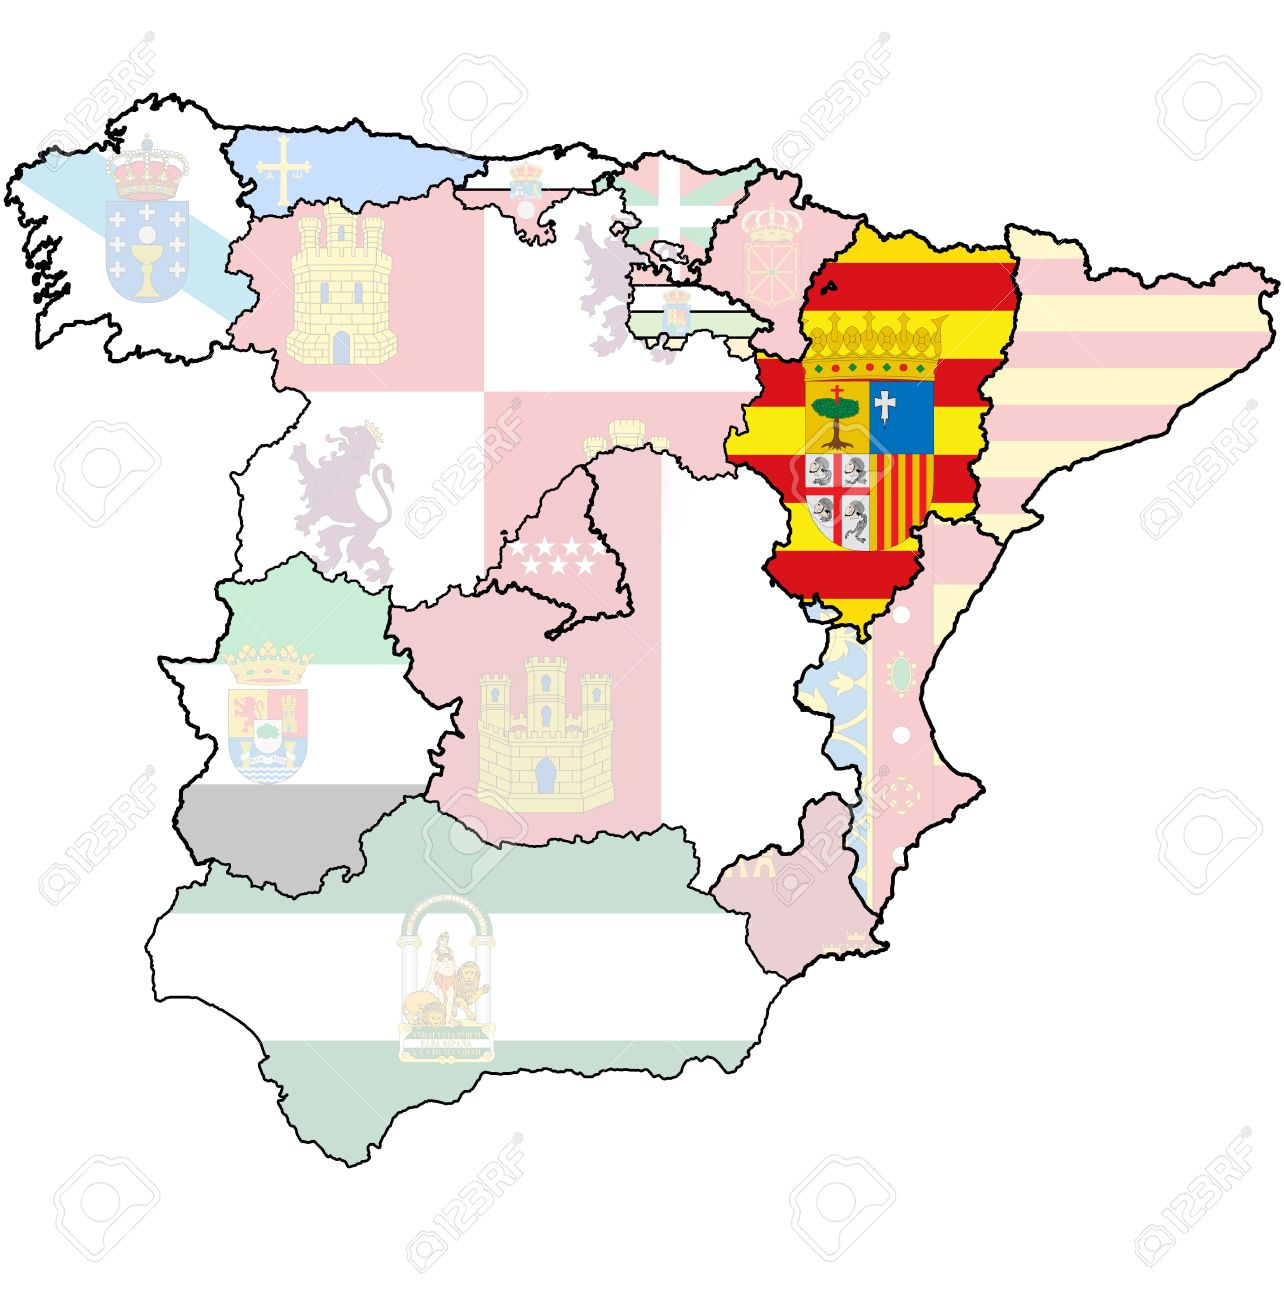 Aragon Region On Administration Map Of Regions Of Spain With Stock